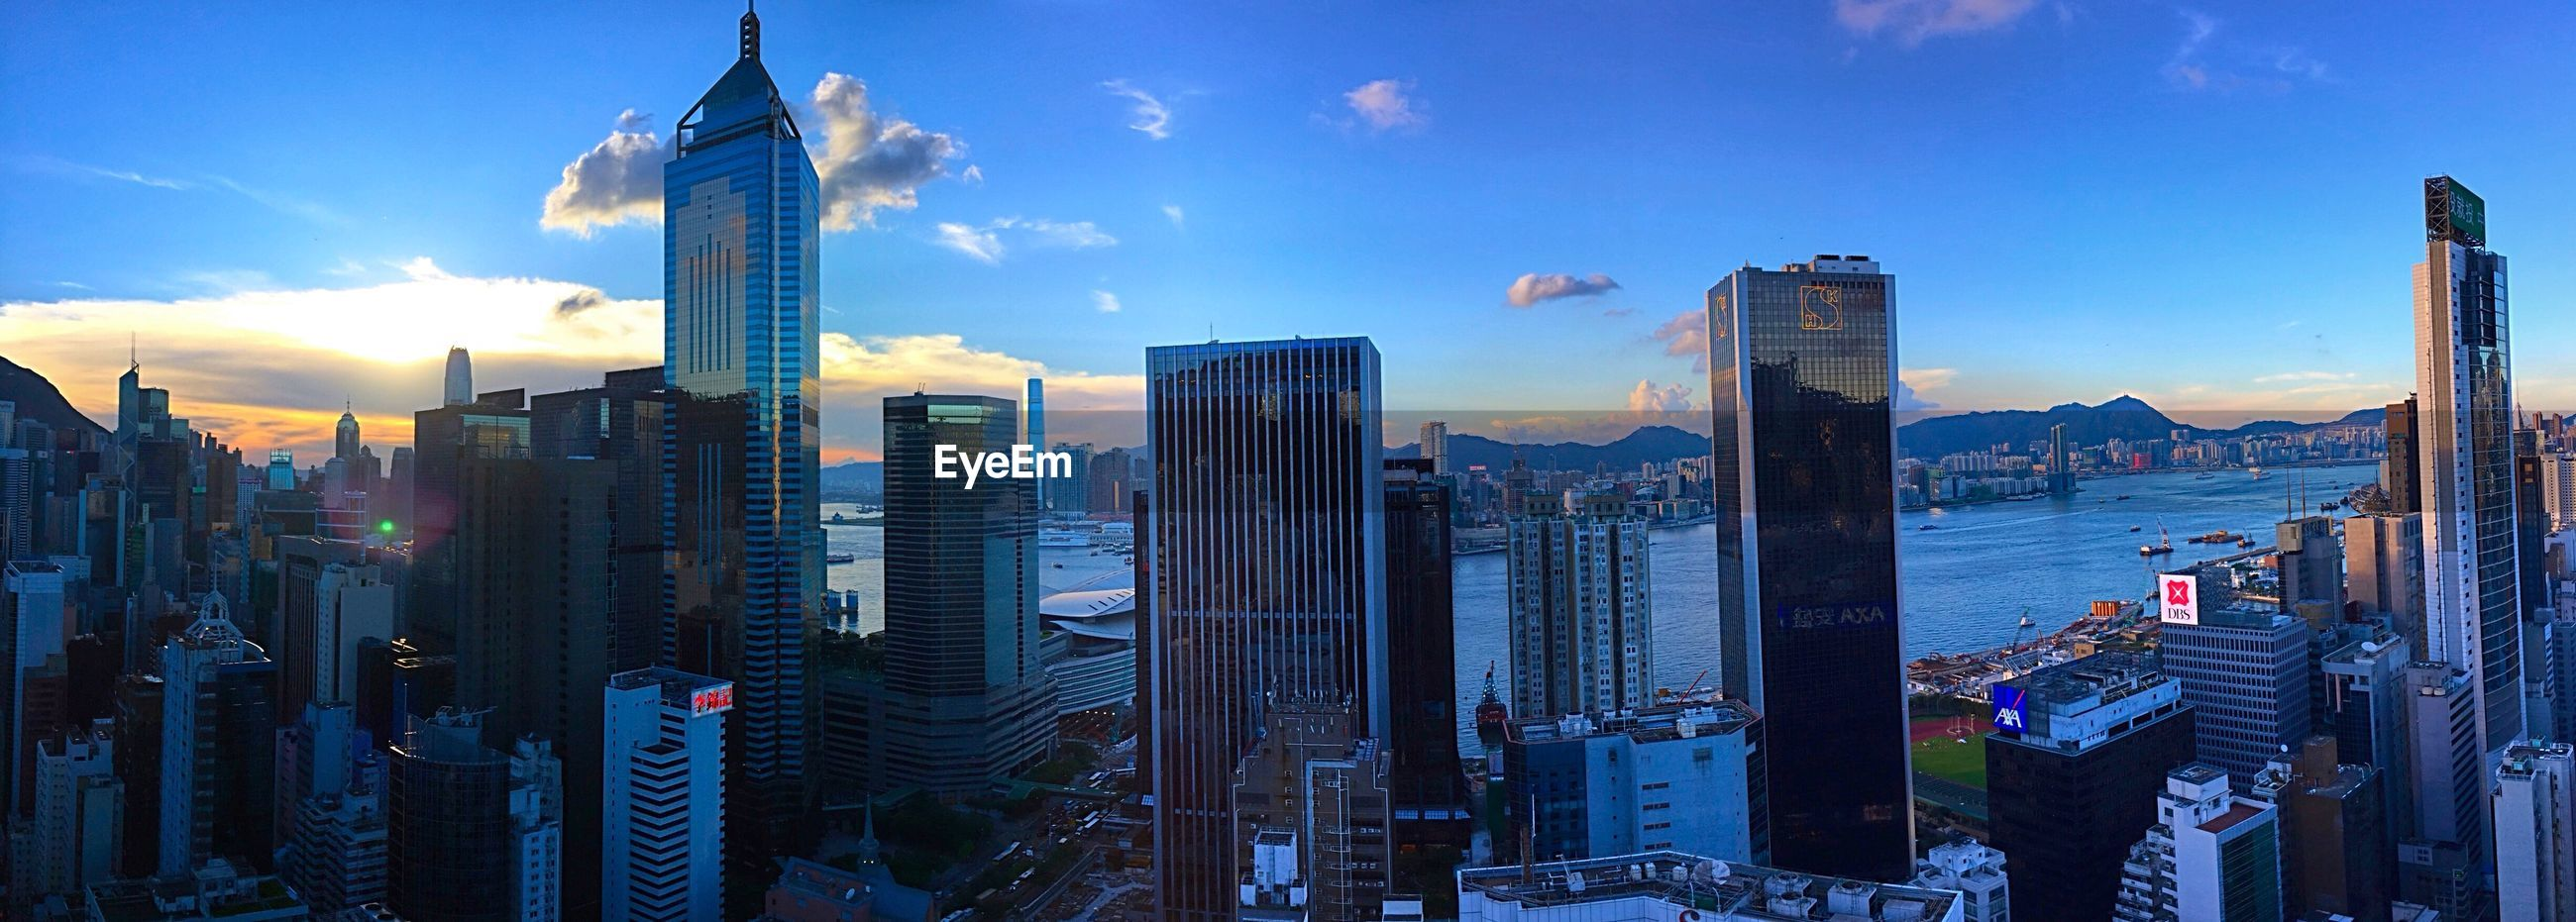 building exterior, city, architecture, skyscraper, built structure, cityscape, tall - high, modern, office building, sky, tower, urban skyline, financial district, city life, capital cities, cloud - sky, downtown district, panoramic, development, skyline